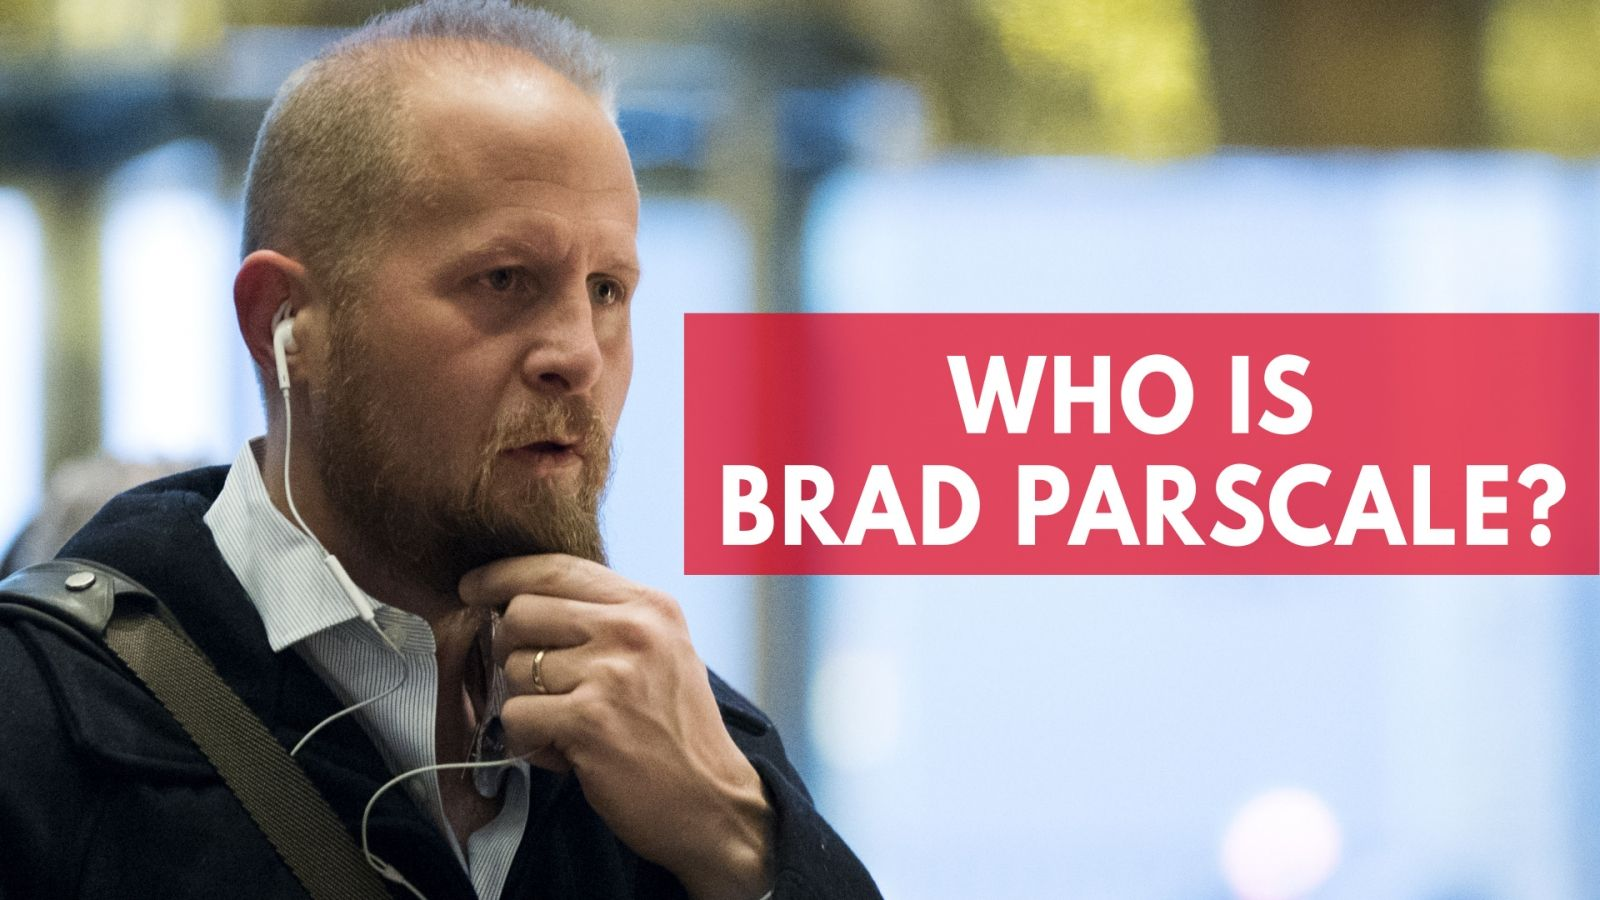 president-trump-taps-brad-parscale-as-campaign-manager-for-2020-re-election-bid